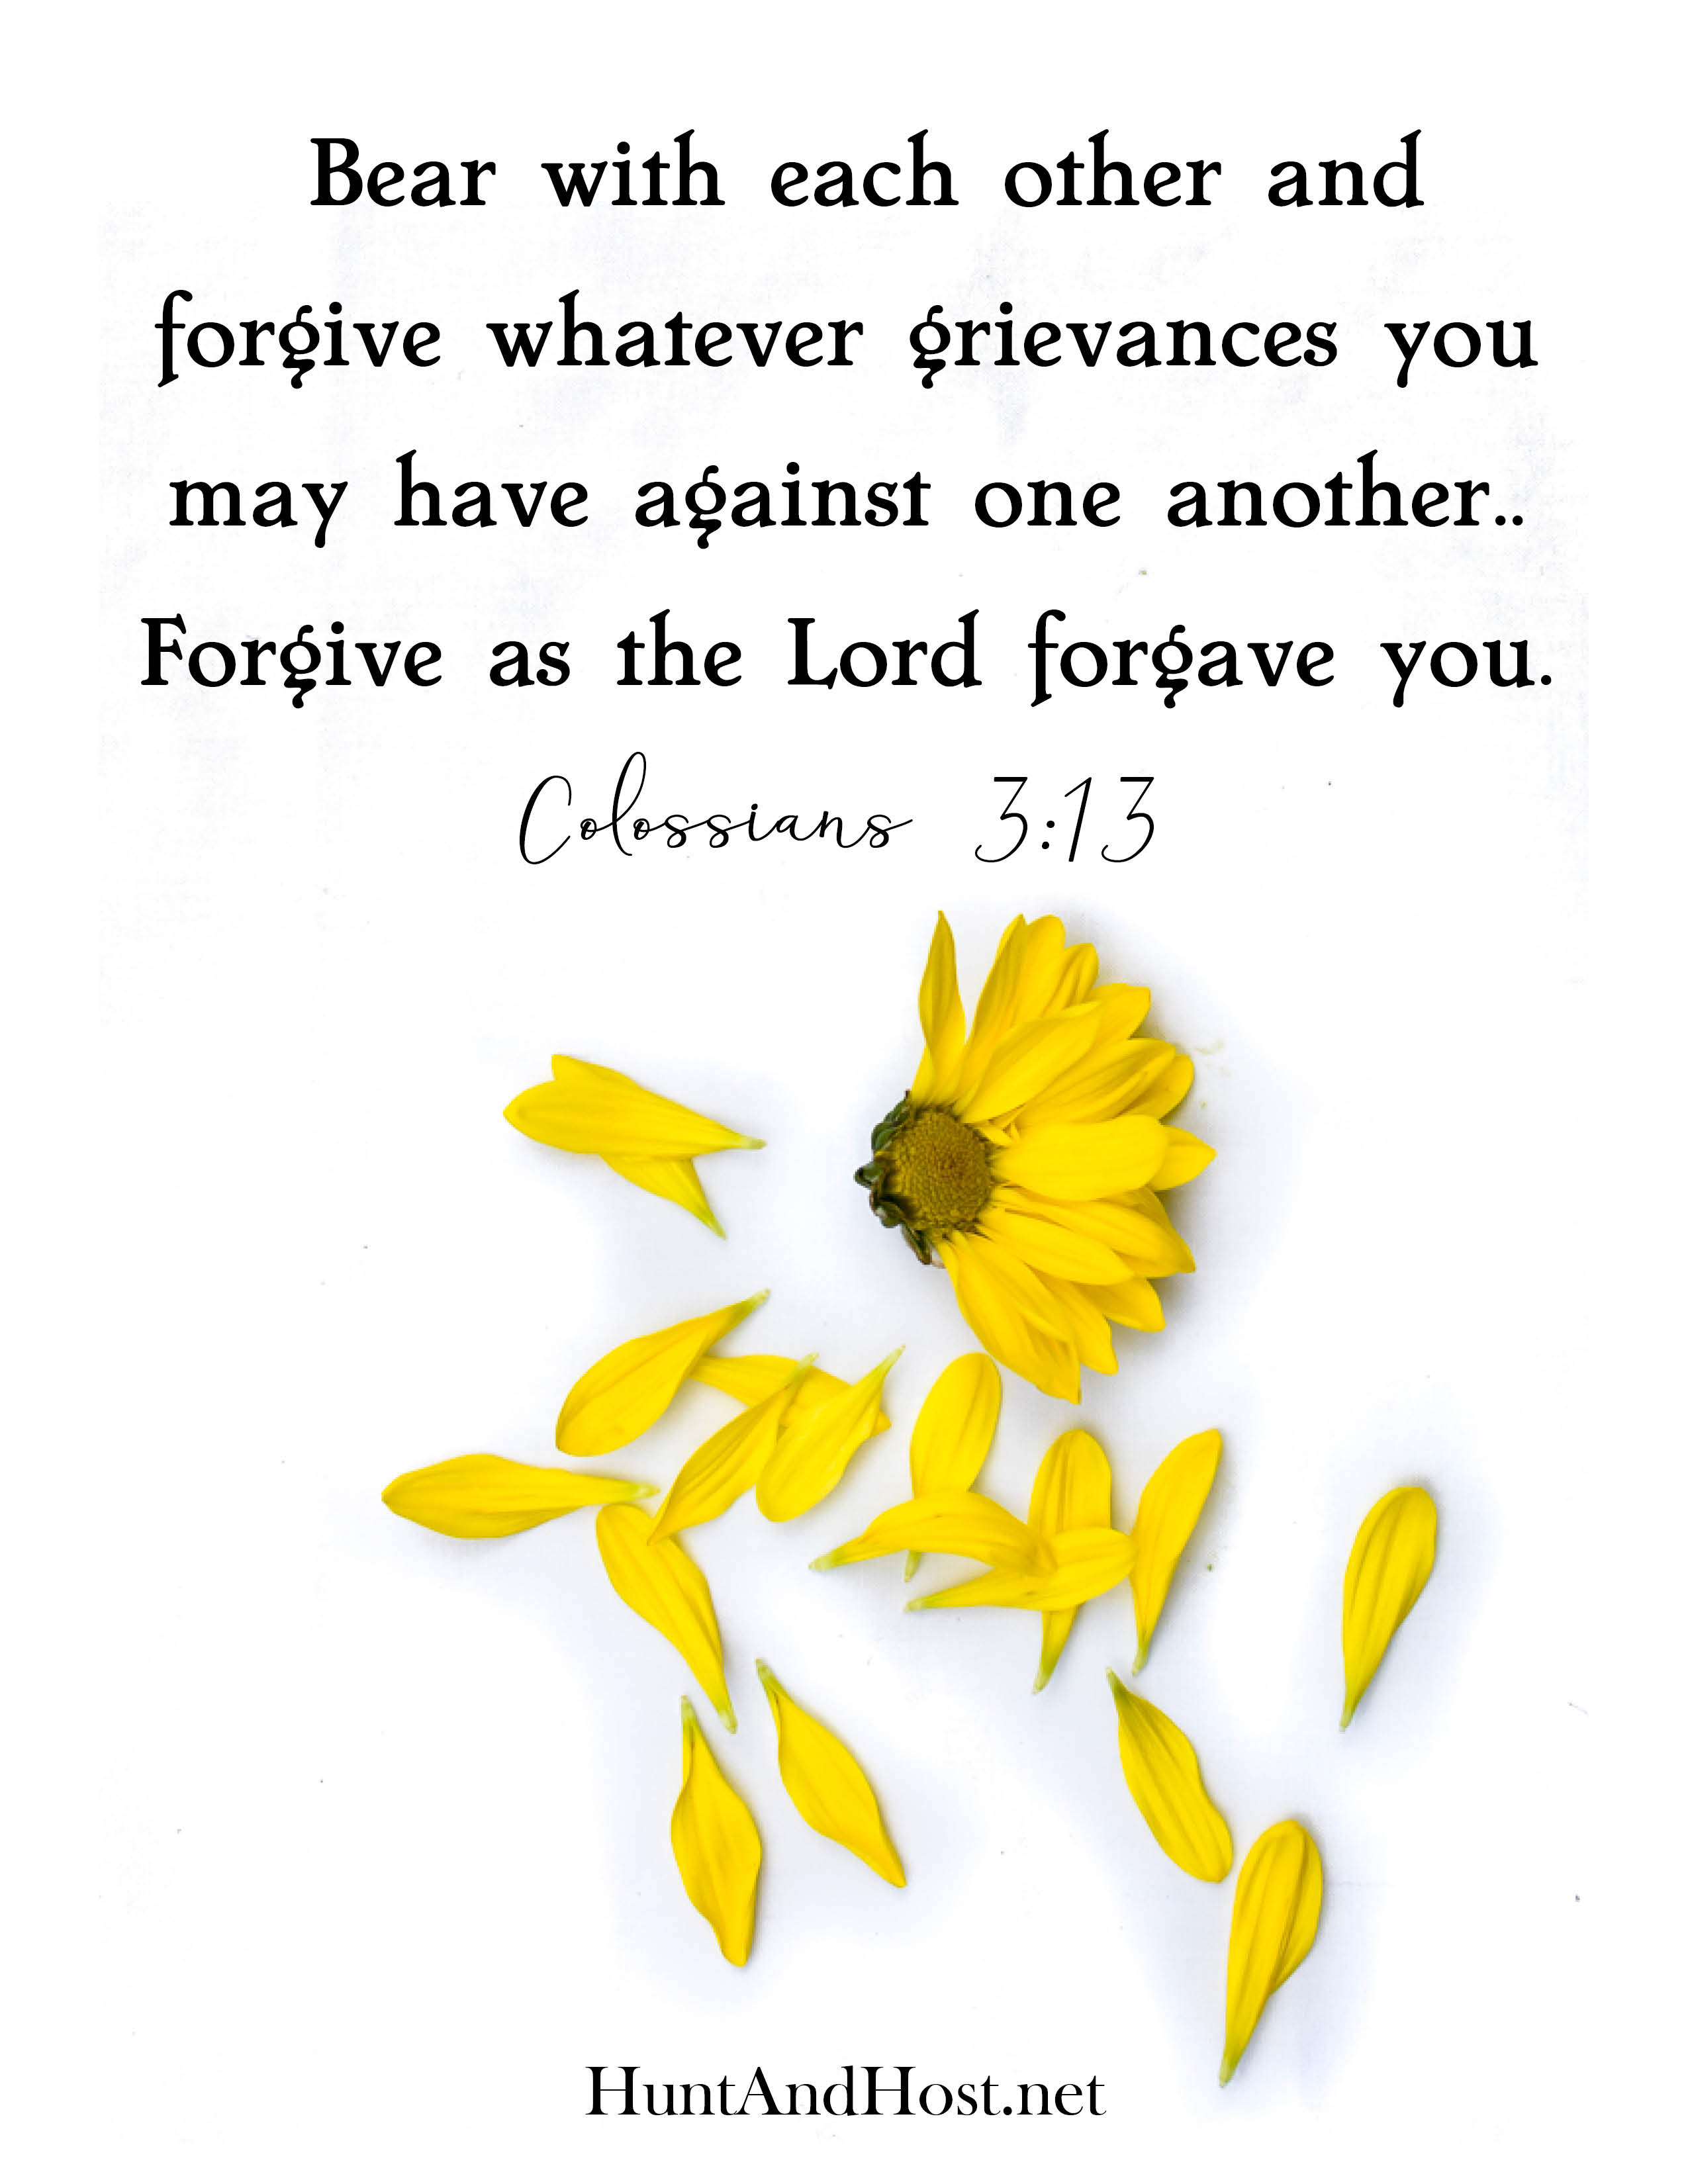 July free printable bible verse Colossians 3:13